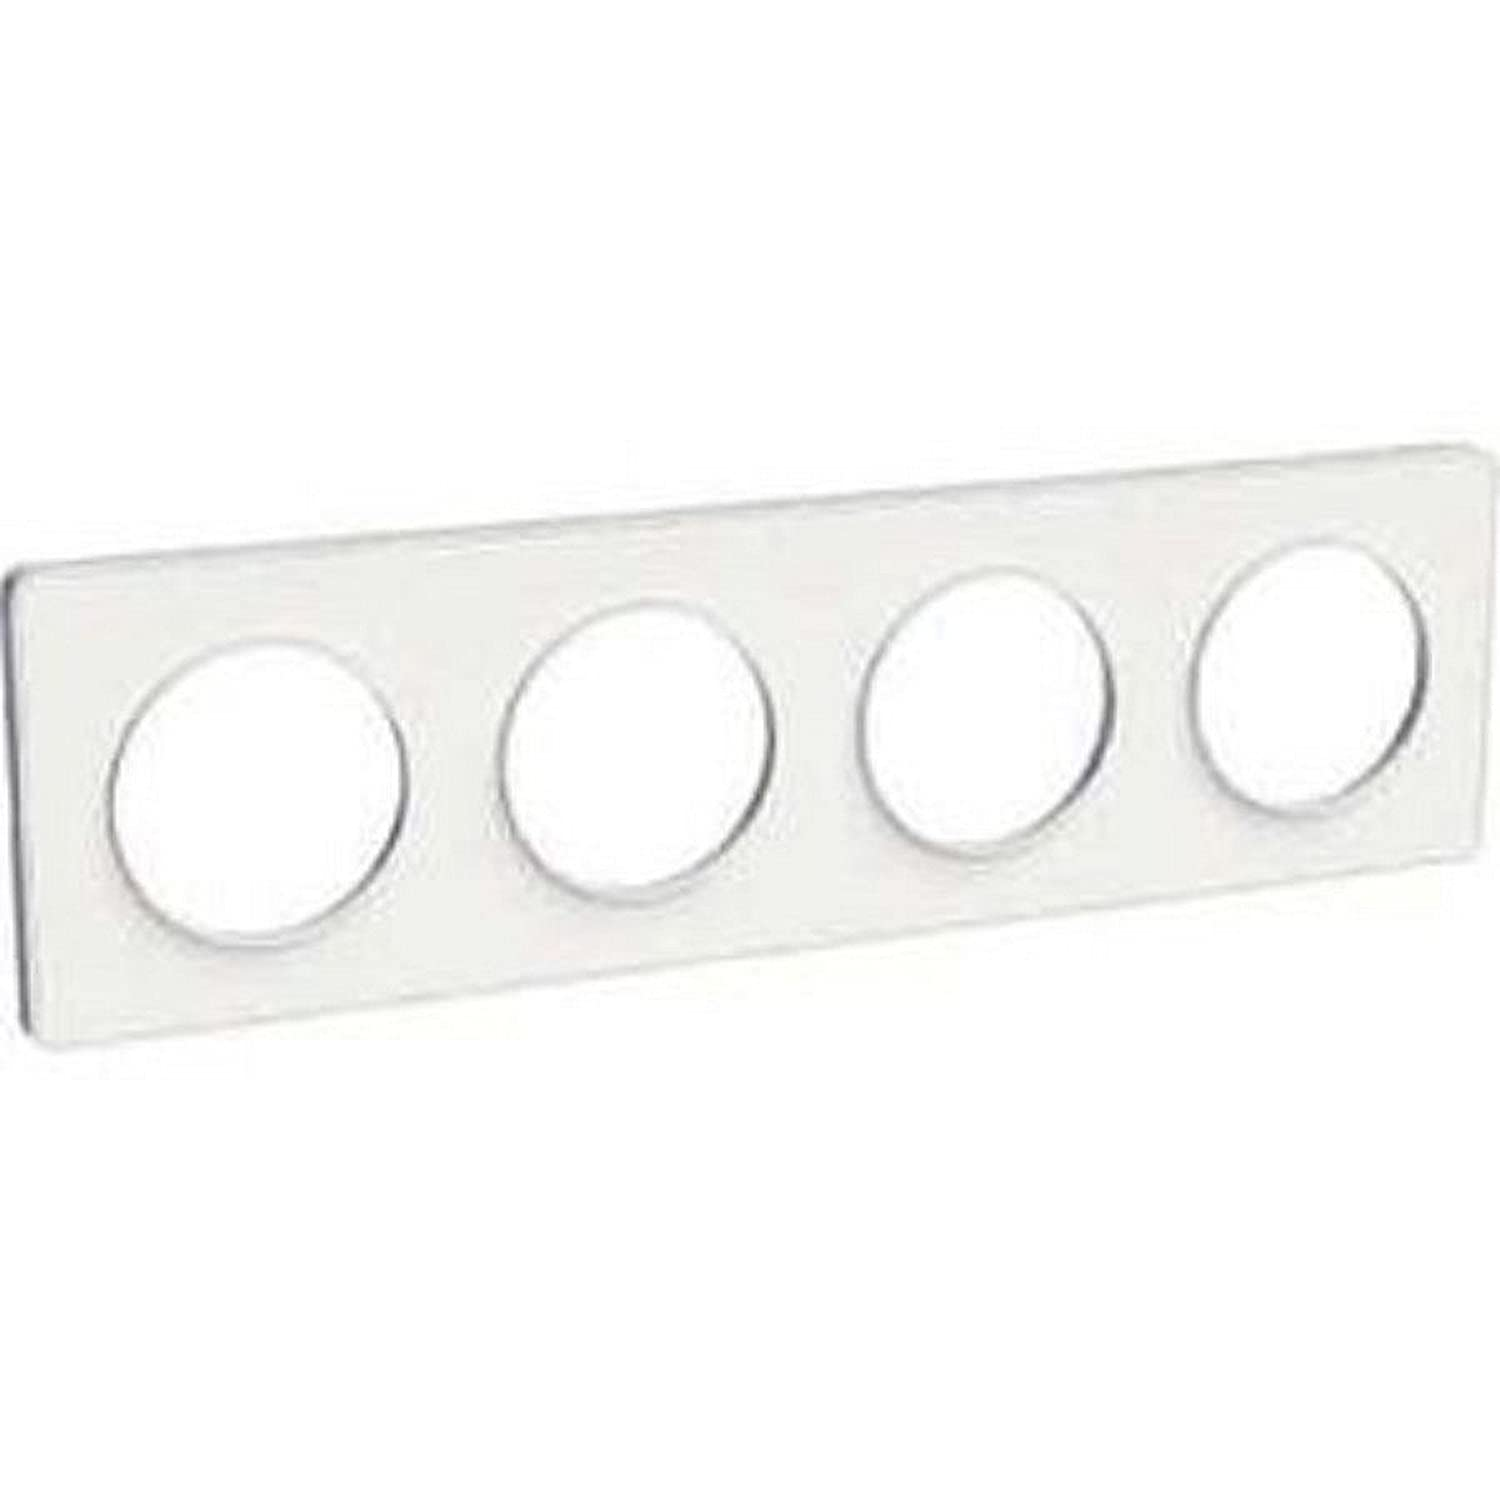 71/mm /Blanc 4 Plaque Odace Touch Blanc entraxe 71/mm/